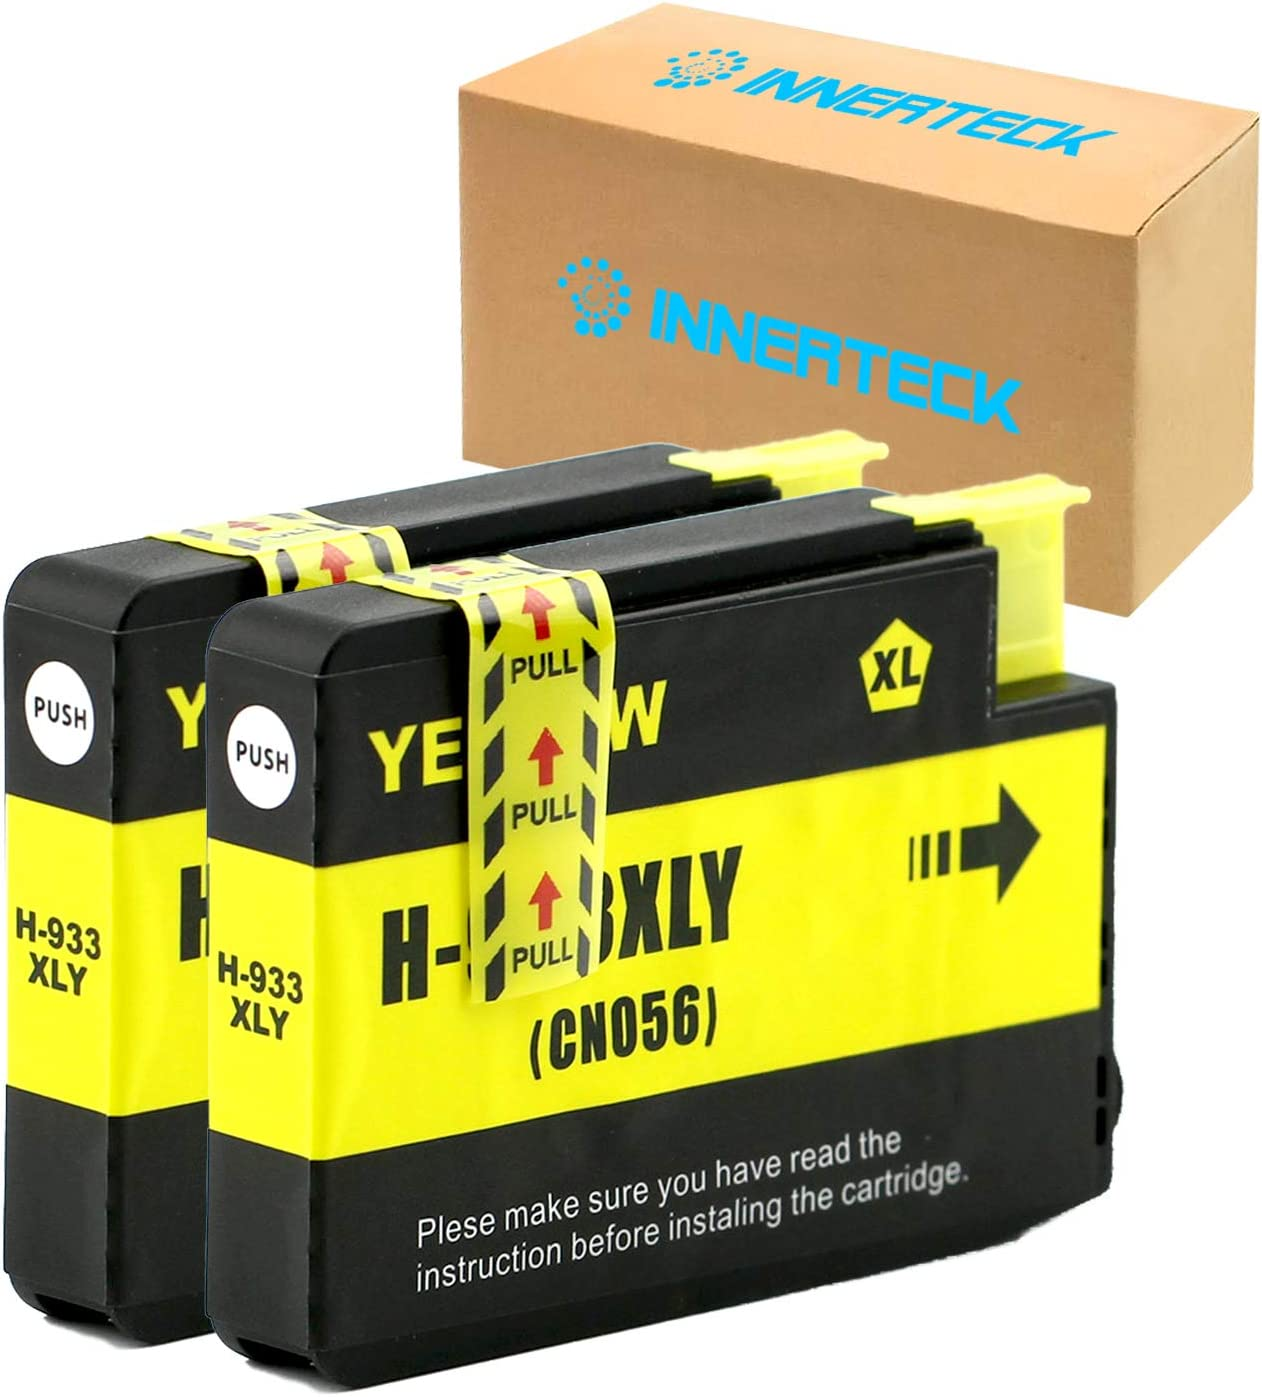 InnerTeck 2 Yellow Compatible Ink Cartridges Replacement for HP 933 933XL Officejet 6700 6600 Ink Cartridges High Yield Works with Officejet 6100 6600 6700 7510 7612 7610 7110 7512 Printers